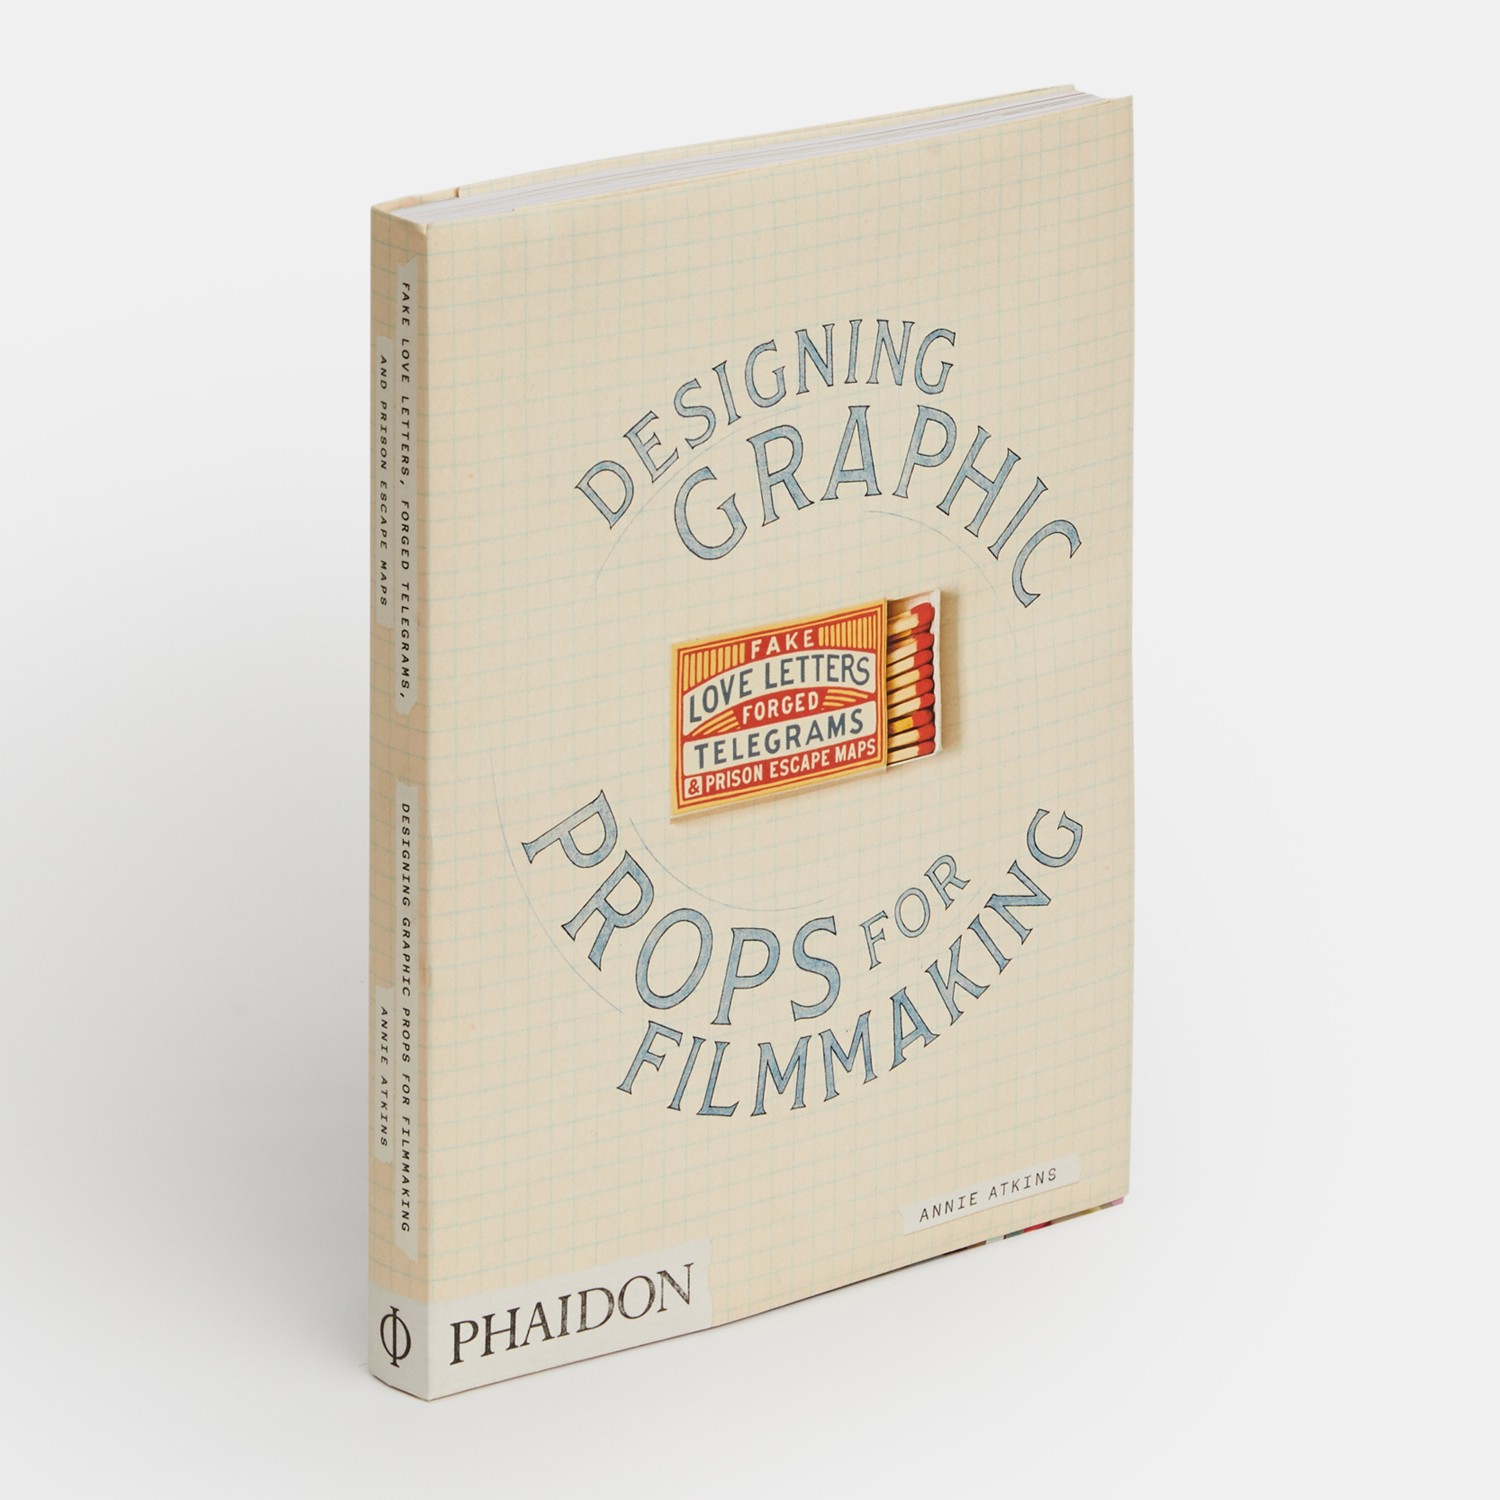 Book cover of Graphic Design Props for Filmmaking by Annie Atkins